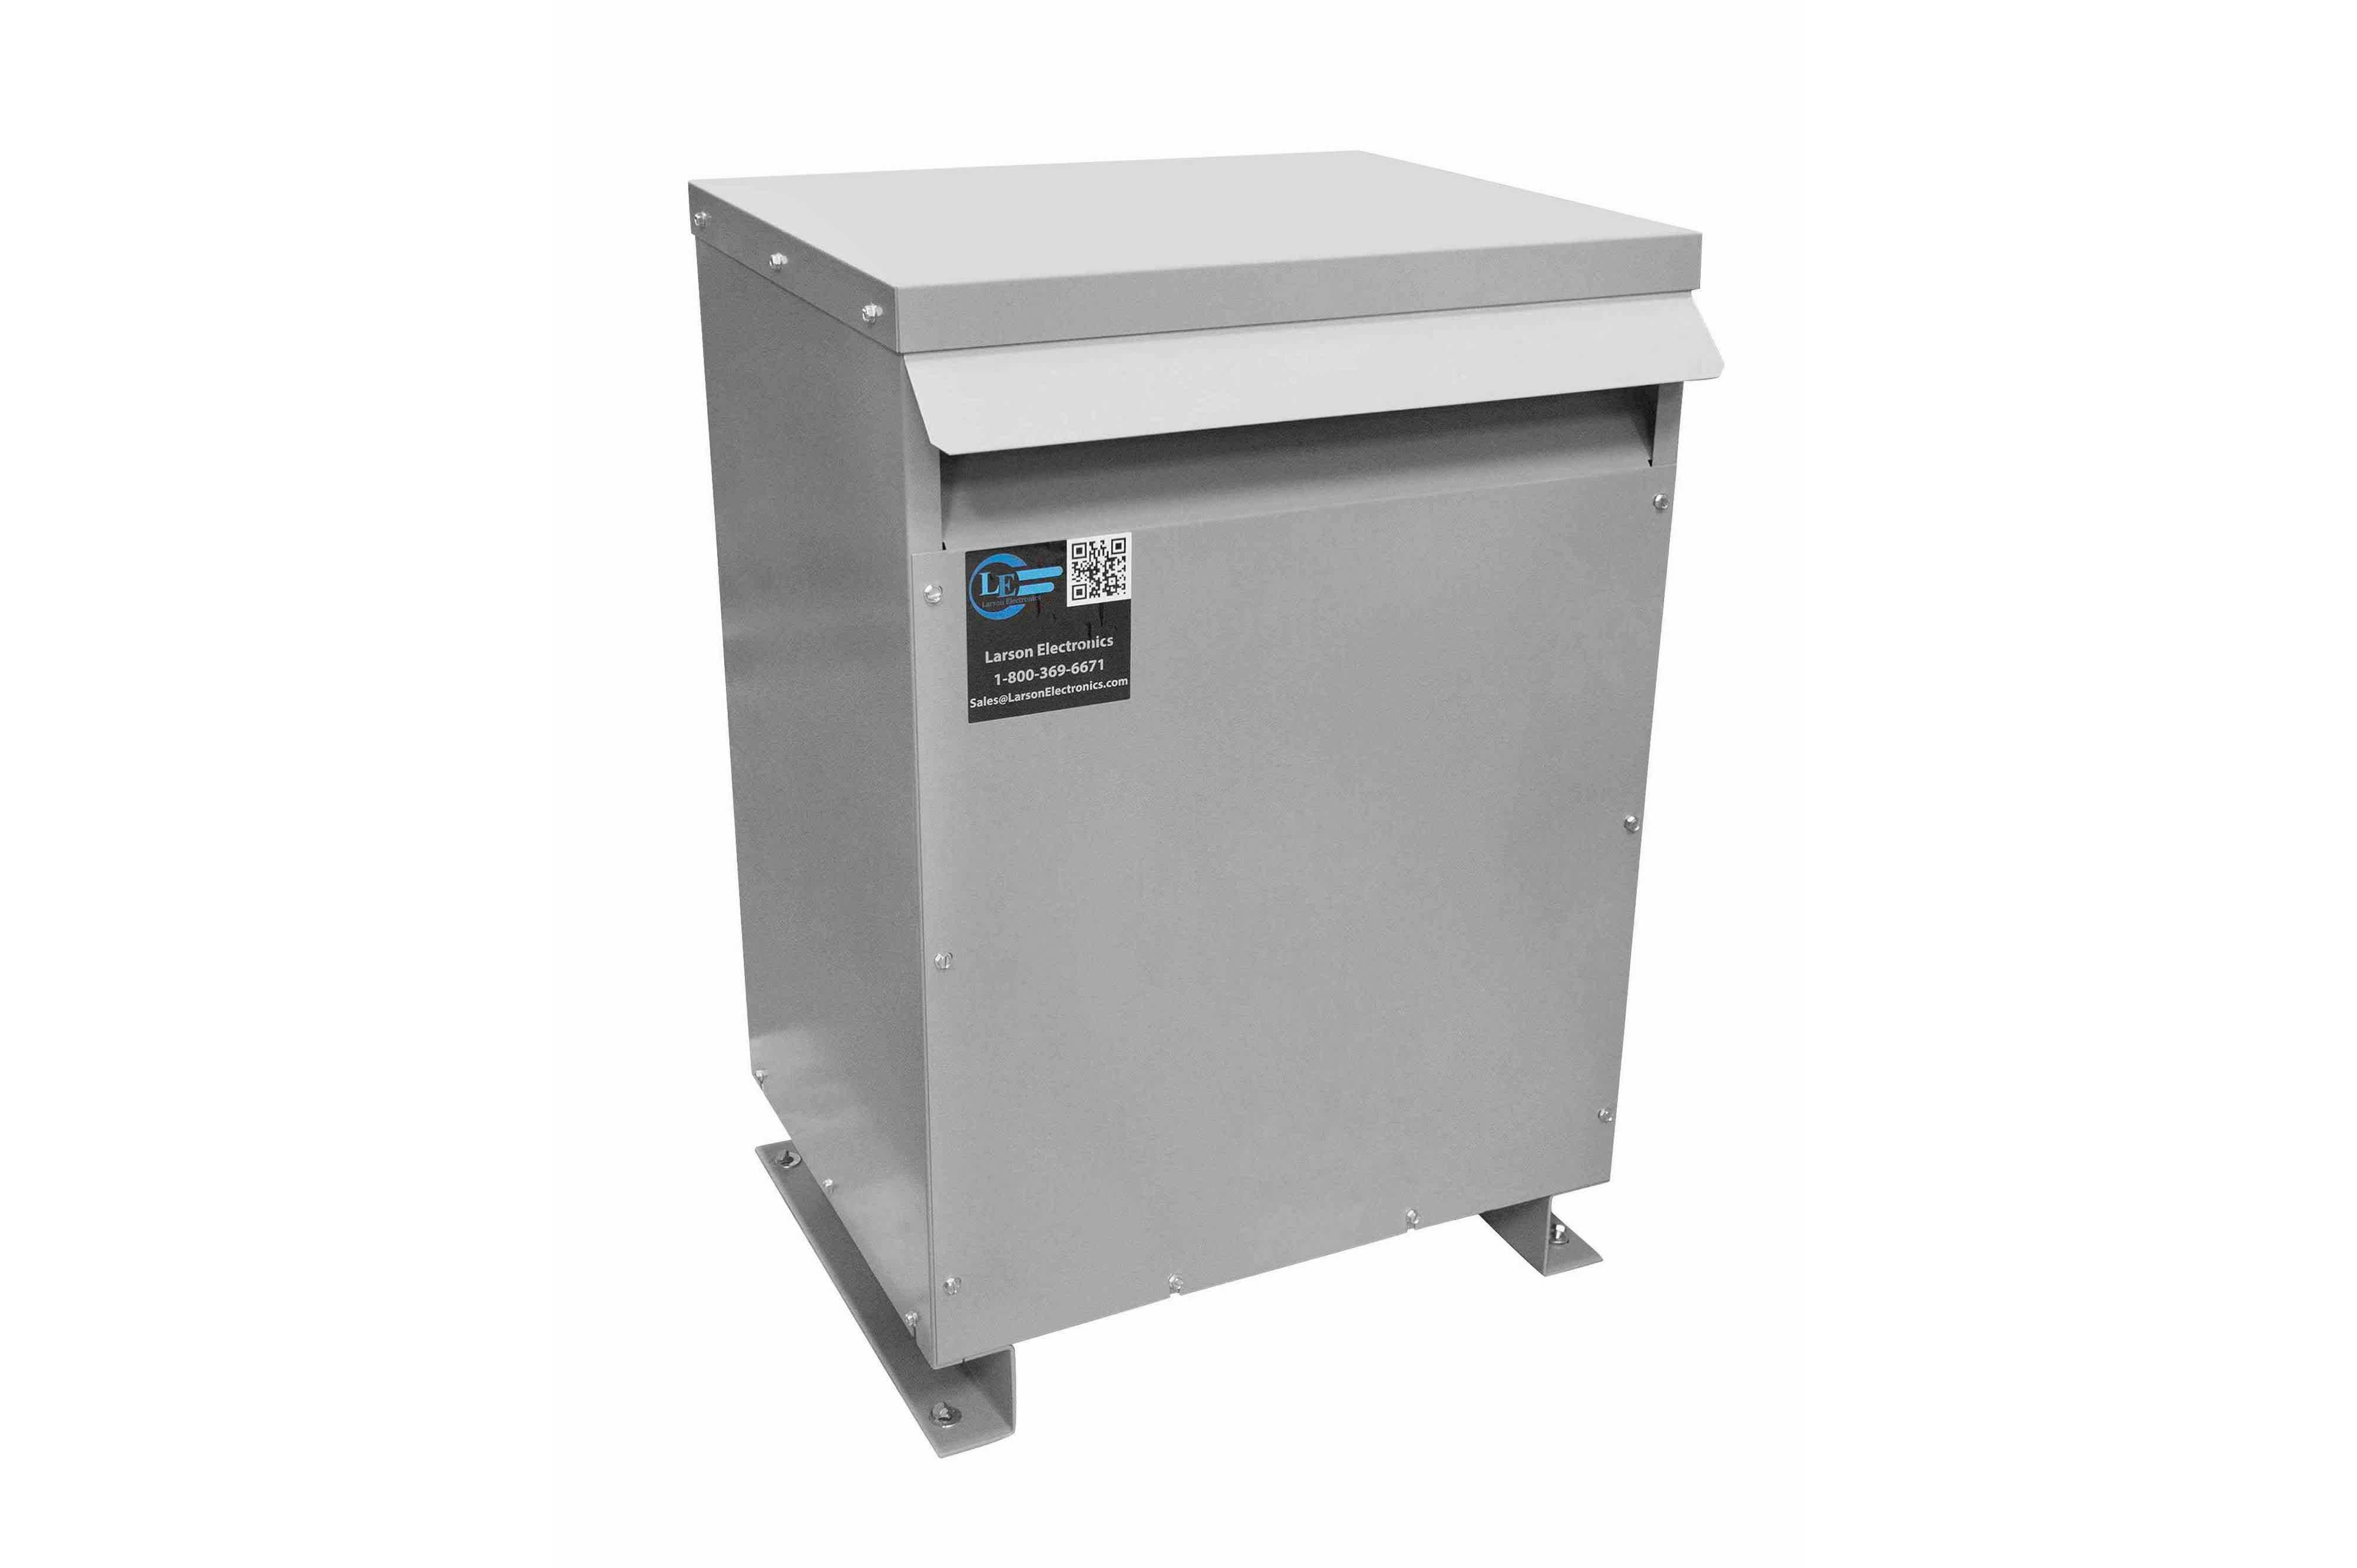 150 kVA 3PH Isolation Transformer, 230V Wye Primary, 480Y/277 Wye-N Secondary, N3R, Ventilated, 60 Hz